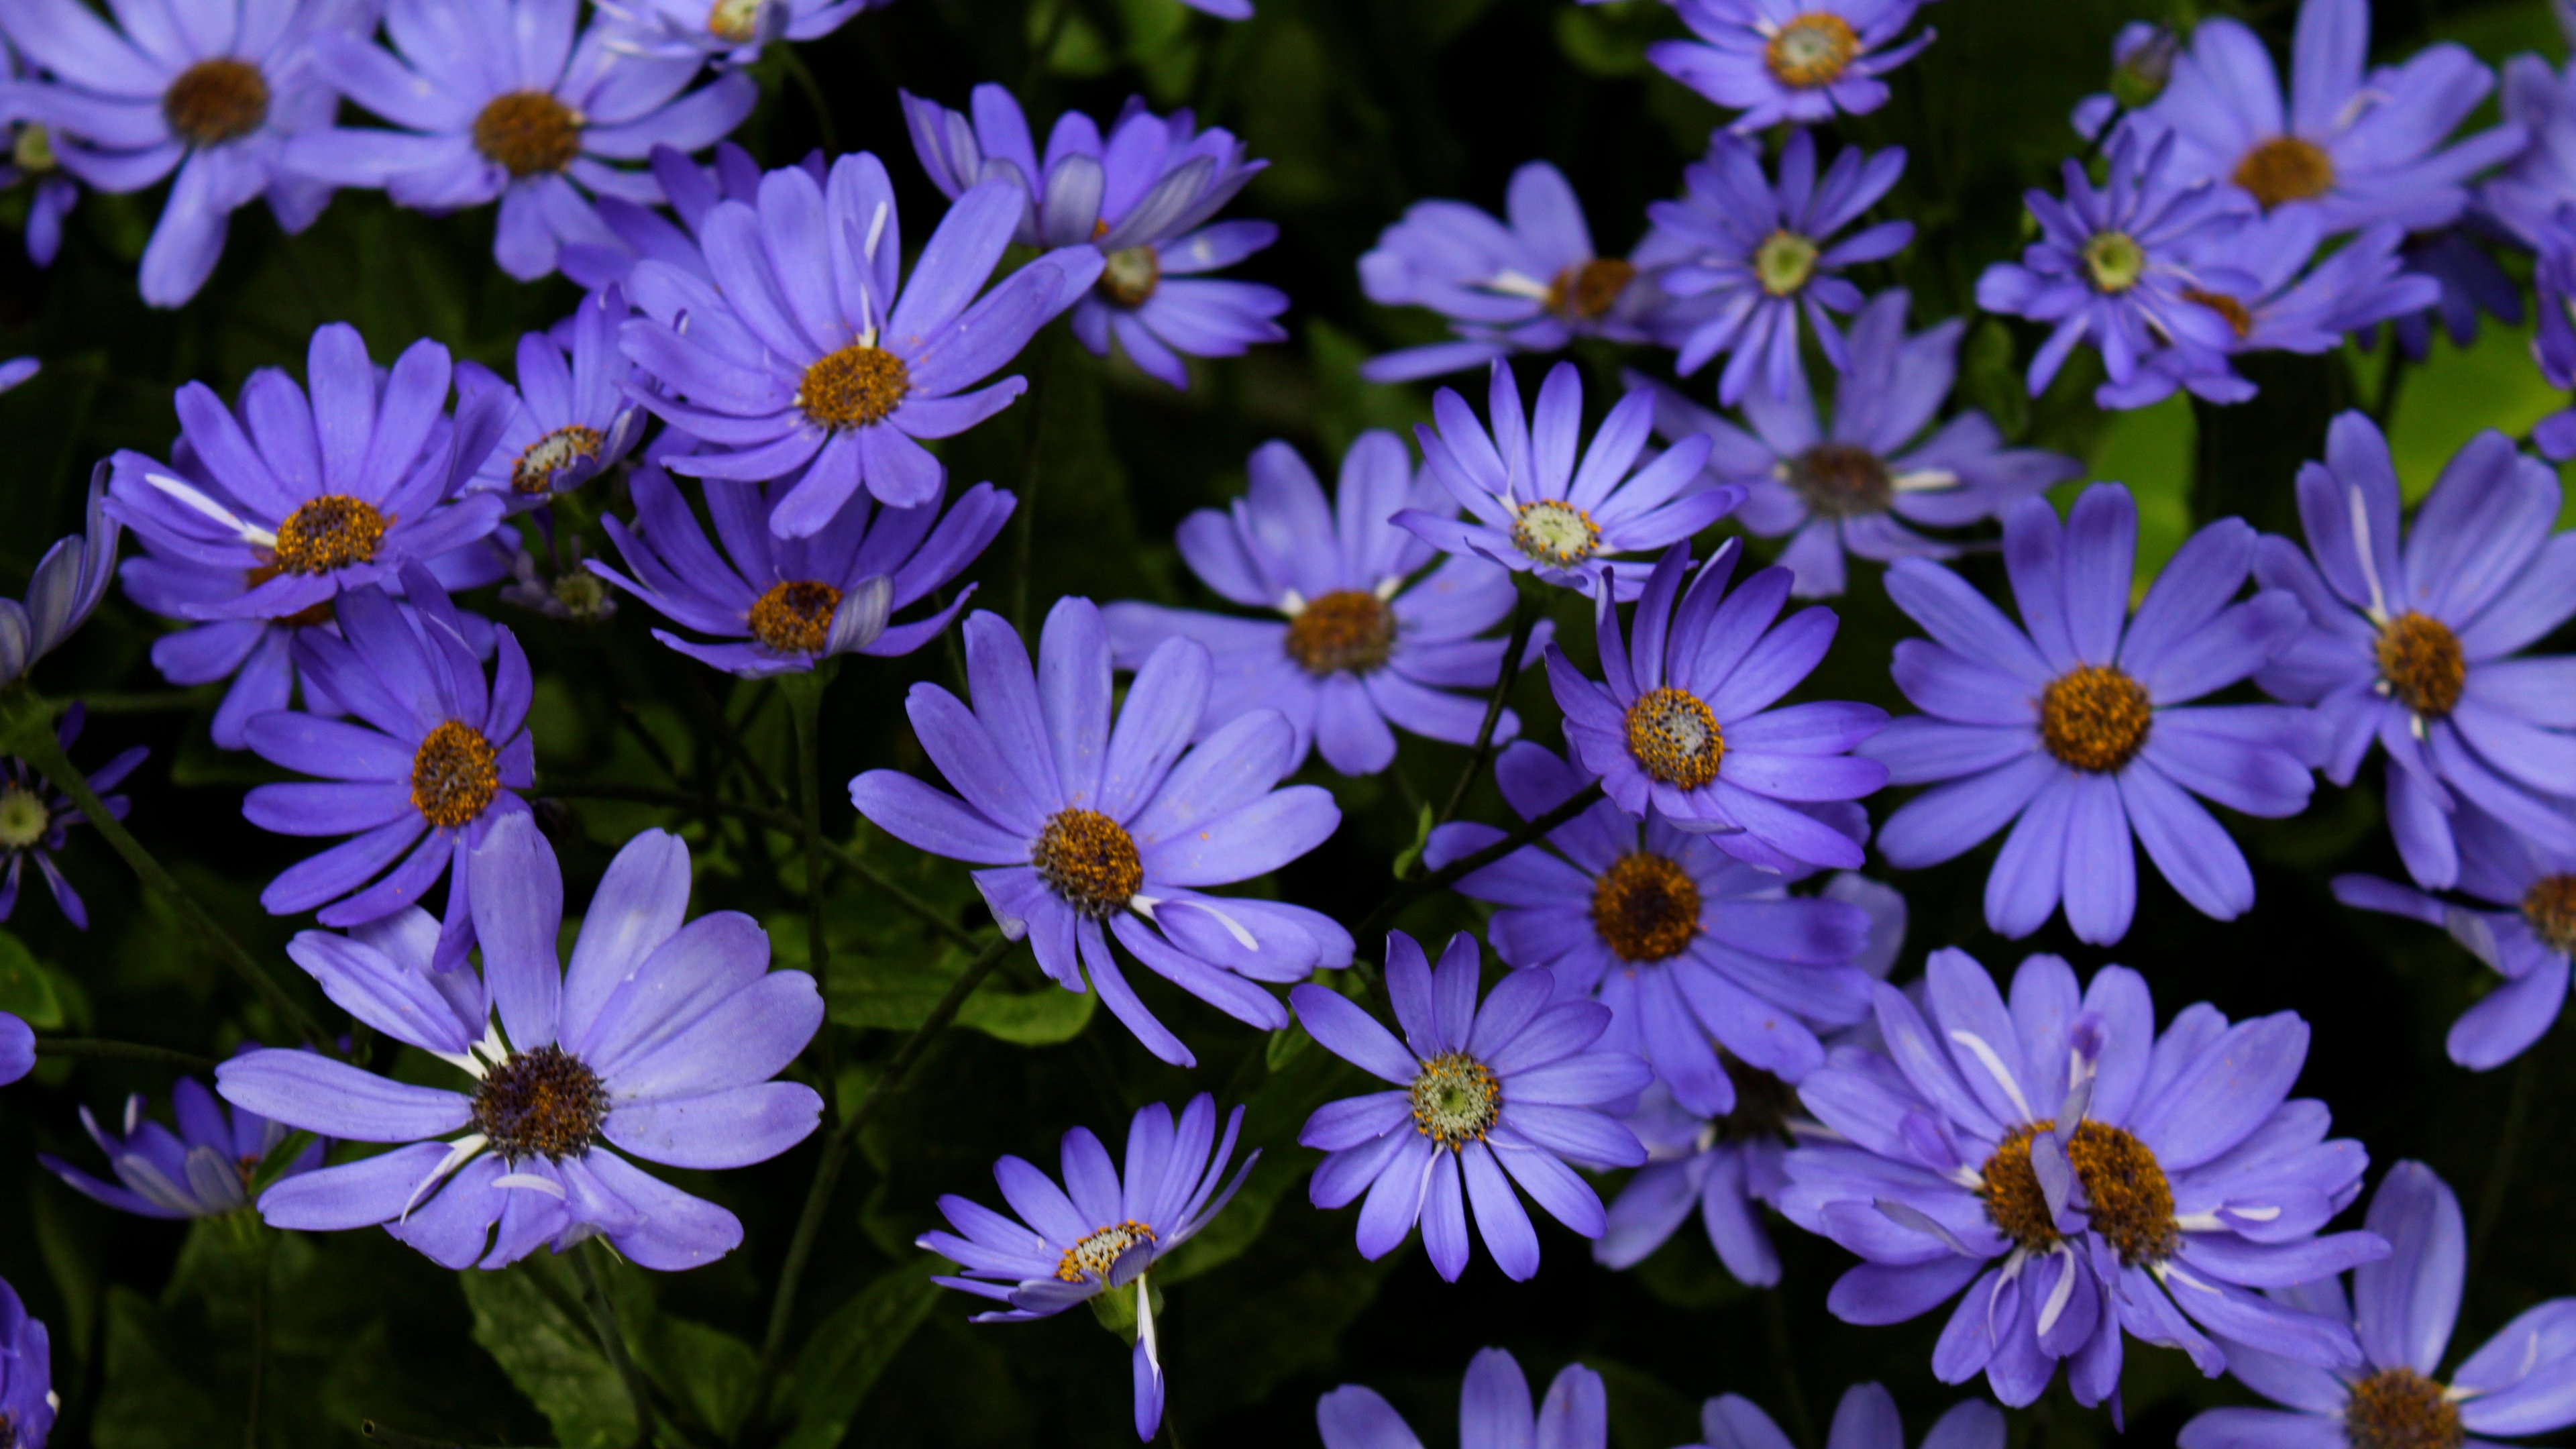 Night Blue Daisies Widescreen Desktop Pictures Free Download